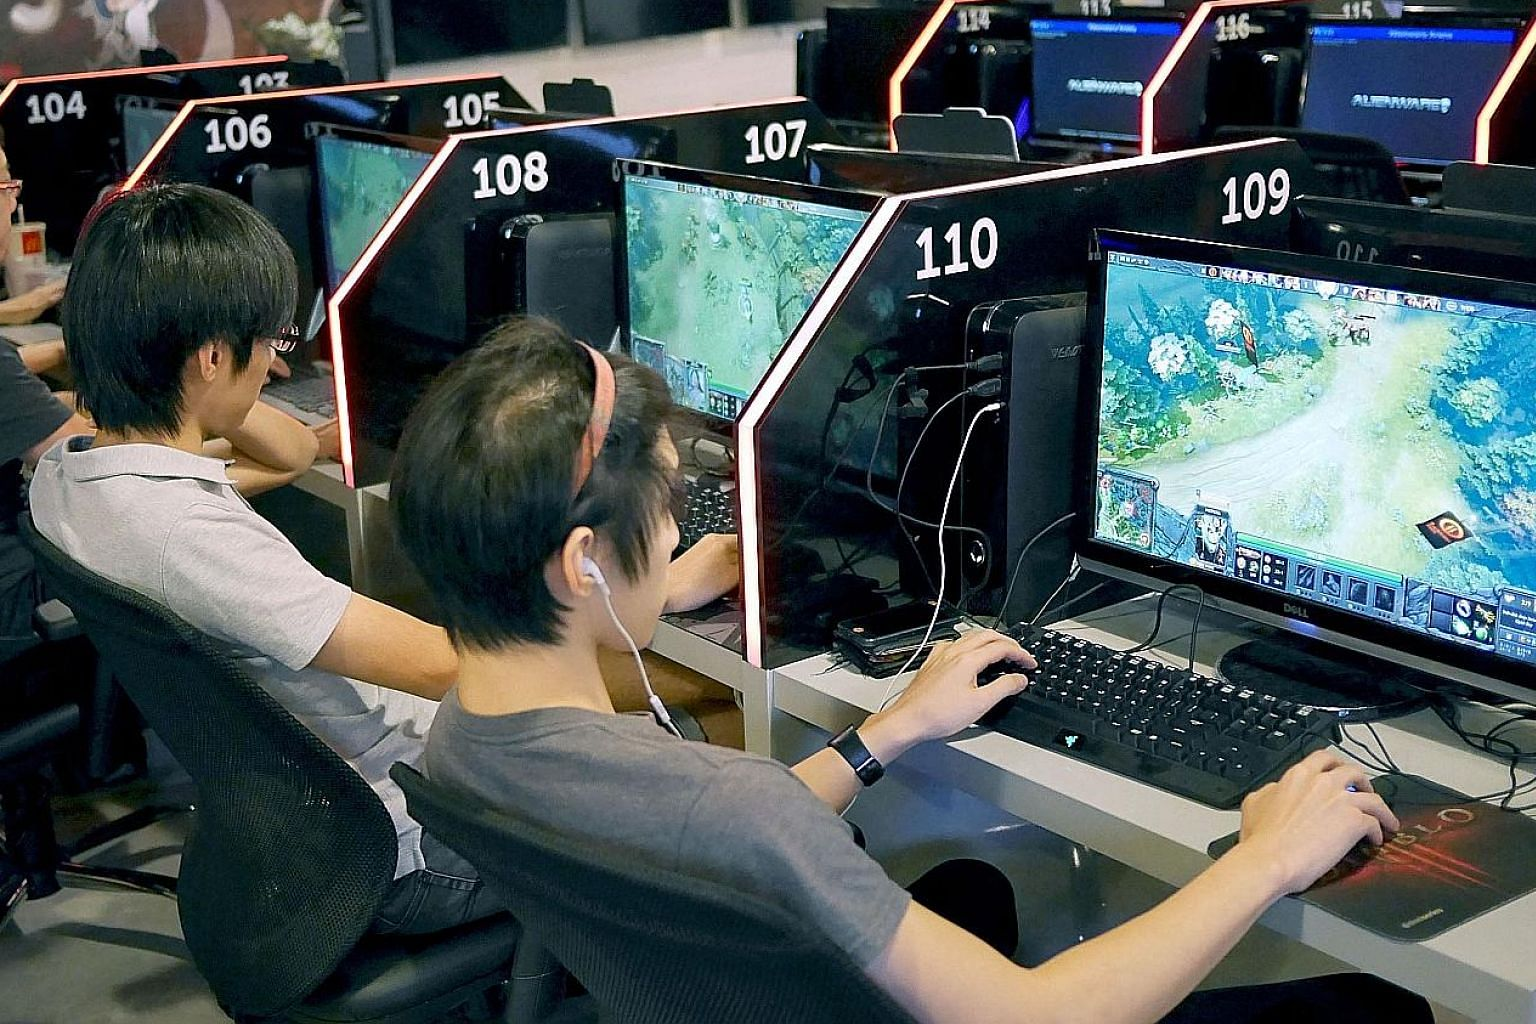 Researchers found that performance in two strategy games including Dota 2 tended to be strongest in players who were around their mid-20s - the same age as one's IQ peaks. This is similar to the behaviour seen for players of traditional strategy game